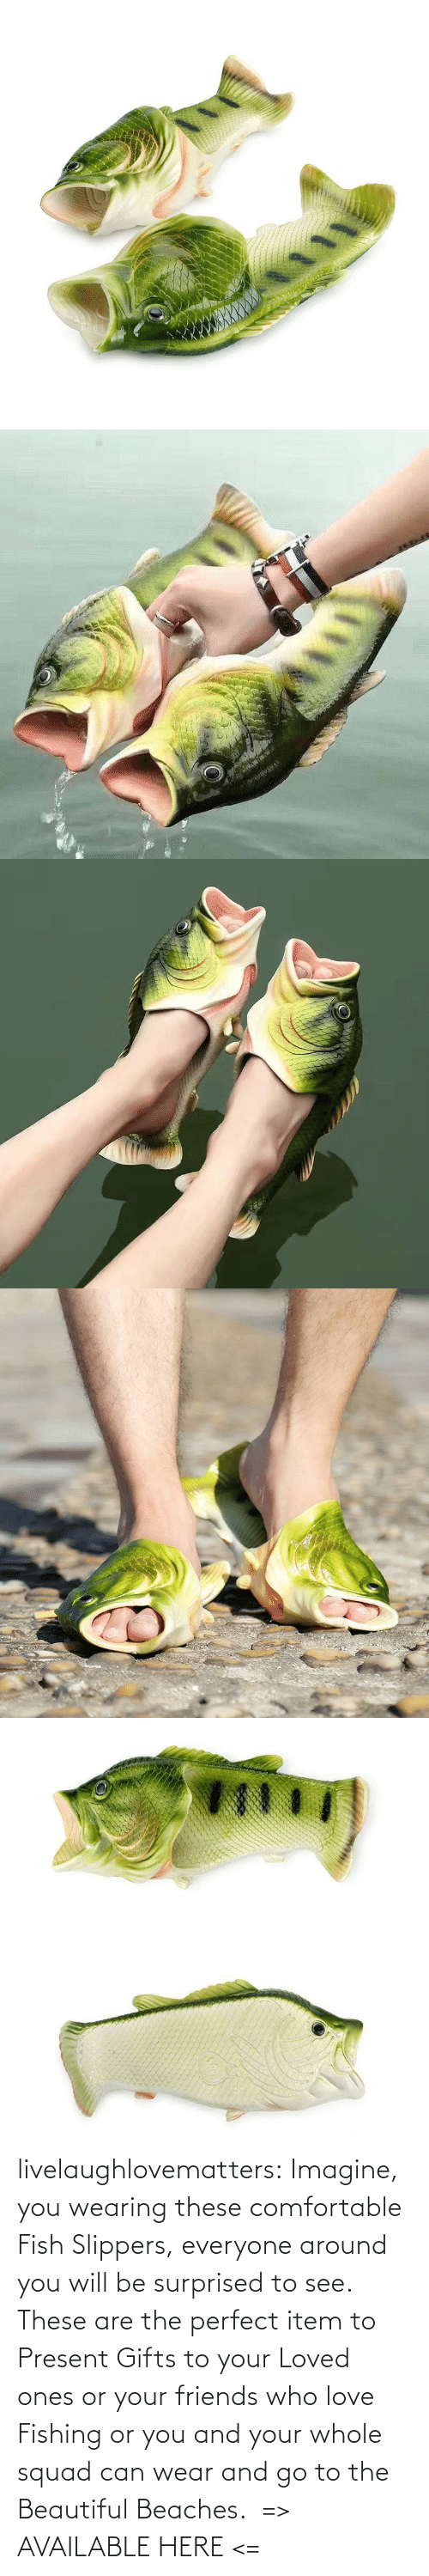 present: livelaughlovematters: Imagine, you wearing these comfortable Fish Slippers, everyone around you will be surprised to see. These are the perfect item to Present Gifts to your Loved ones or your friends who love Fishing or you and your whole squad can wear and go to the Beautiful Beaches.  => AVAILABLE HERE <=